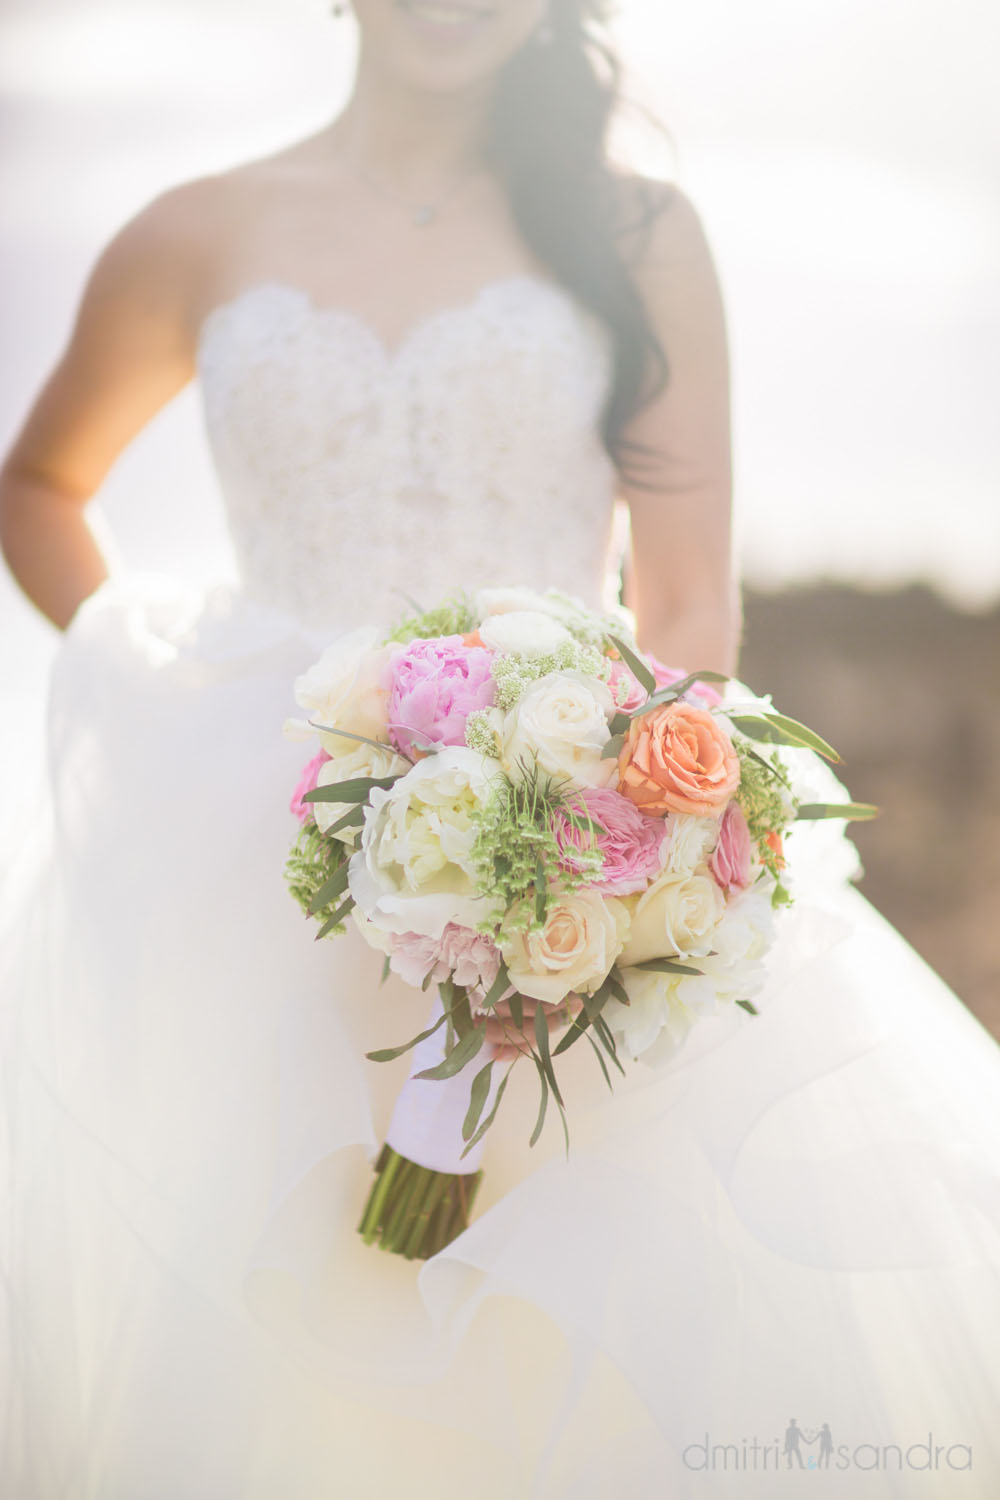 Romantic bridal bouquet by Bliss Maui - photo by Dmitri & Sandra